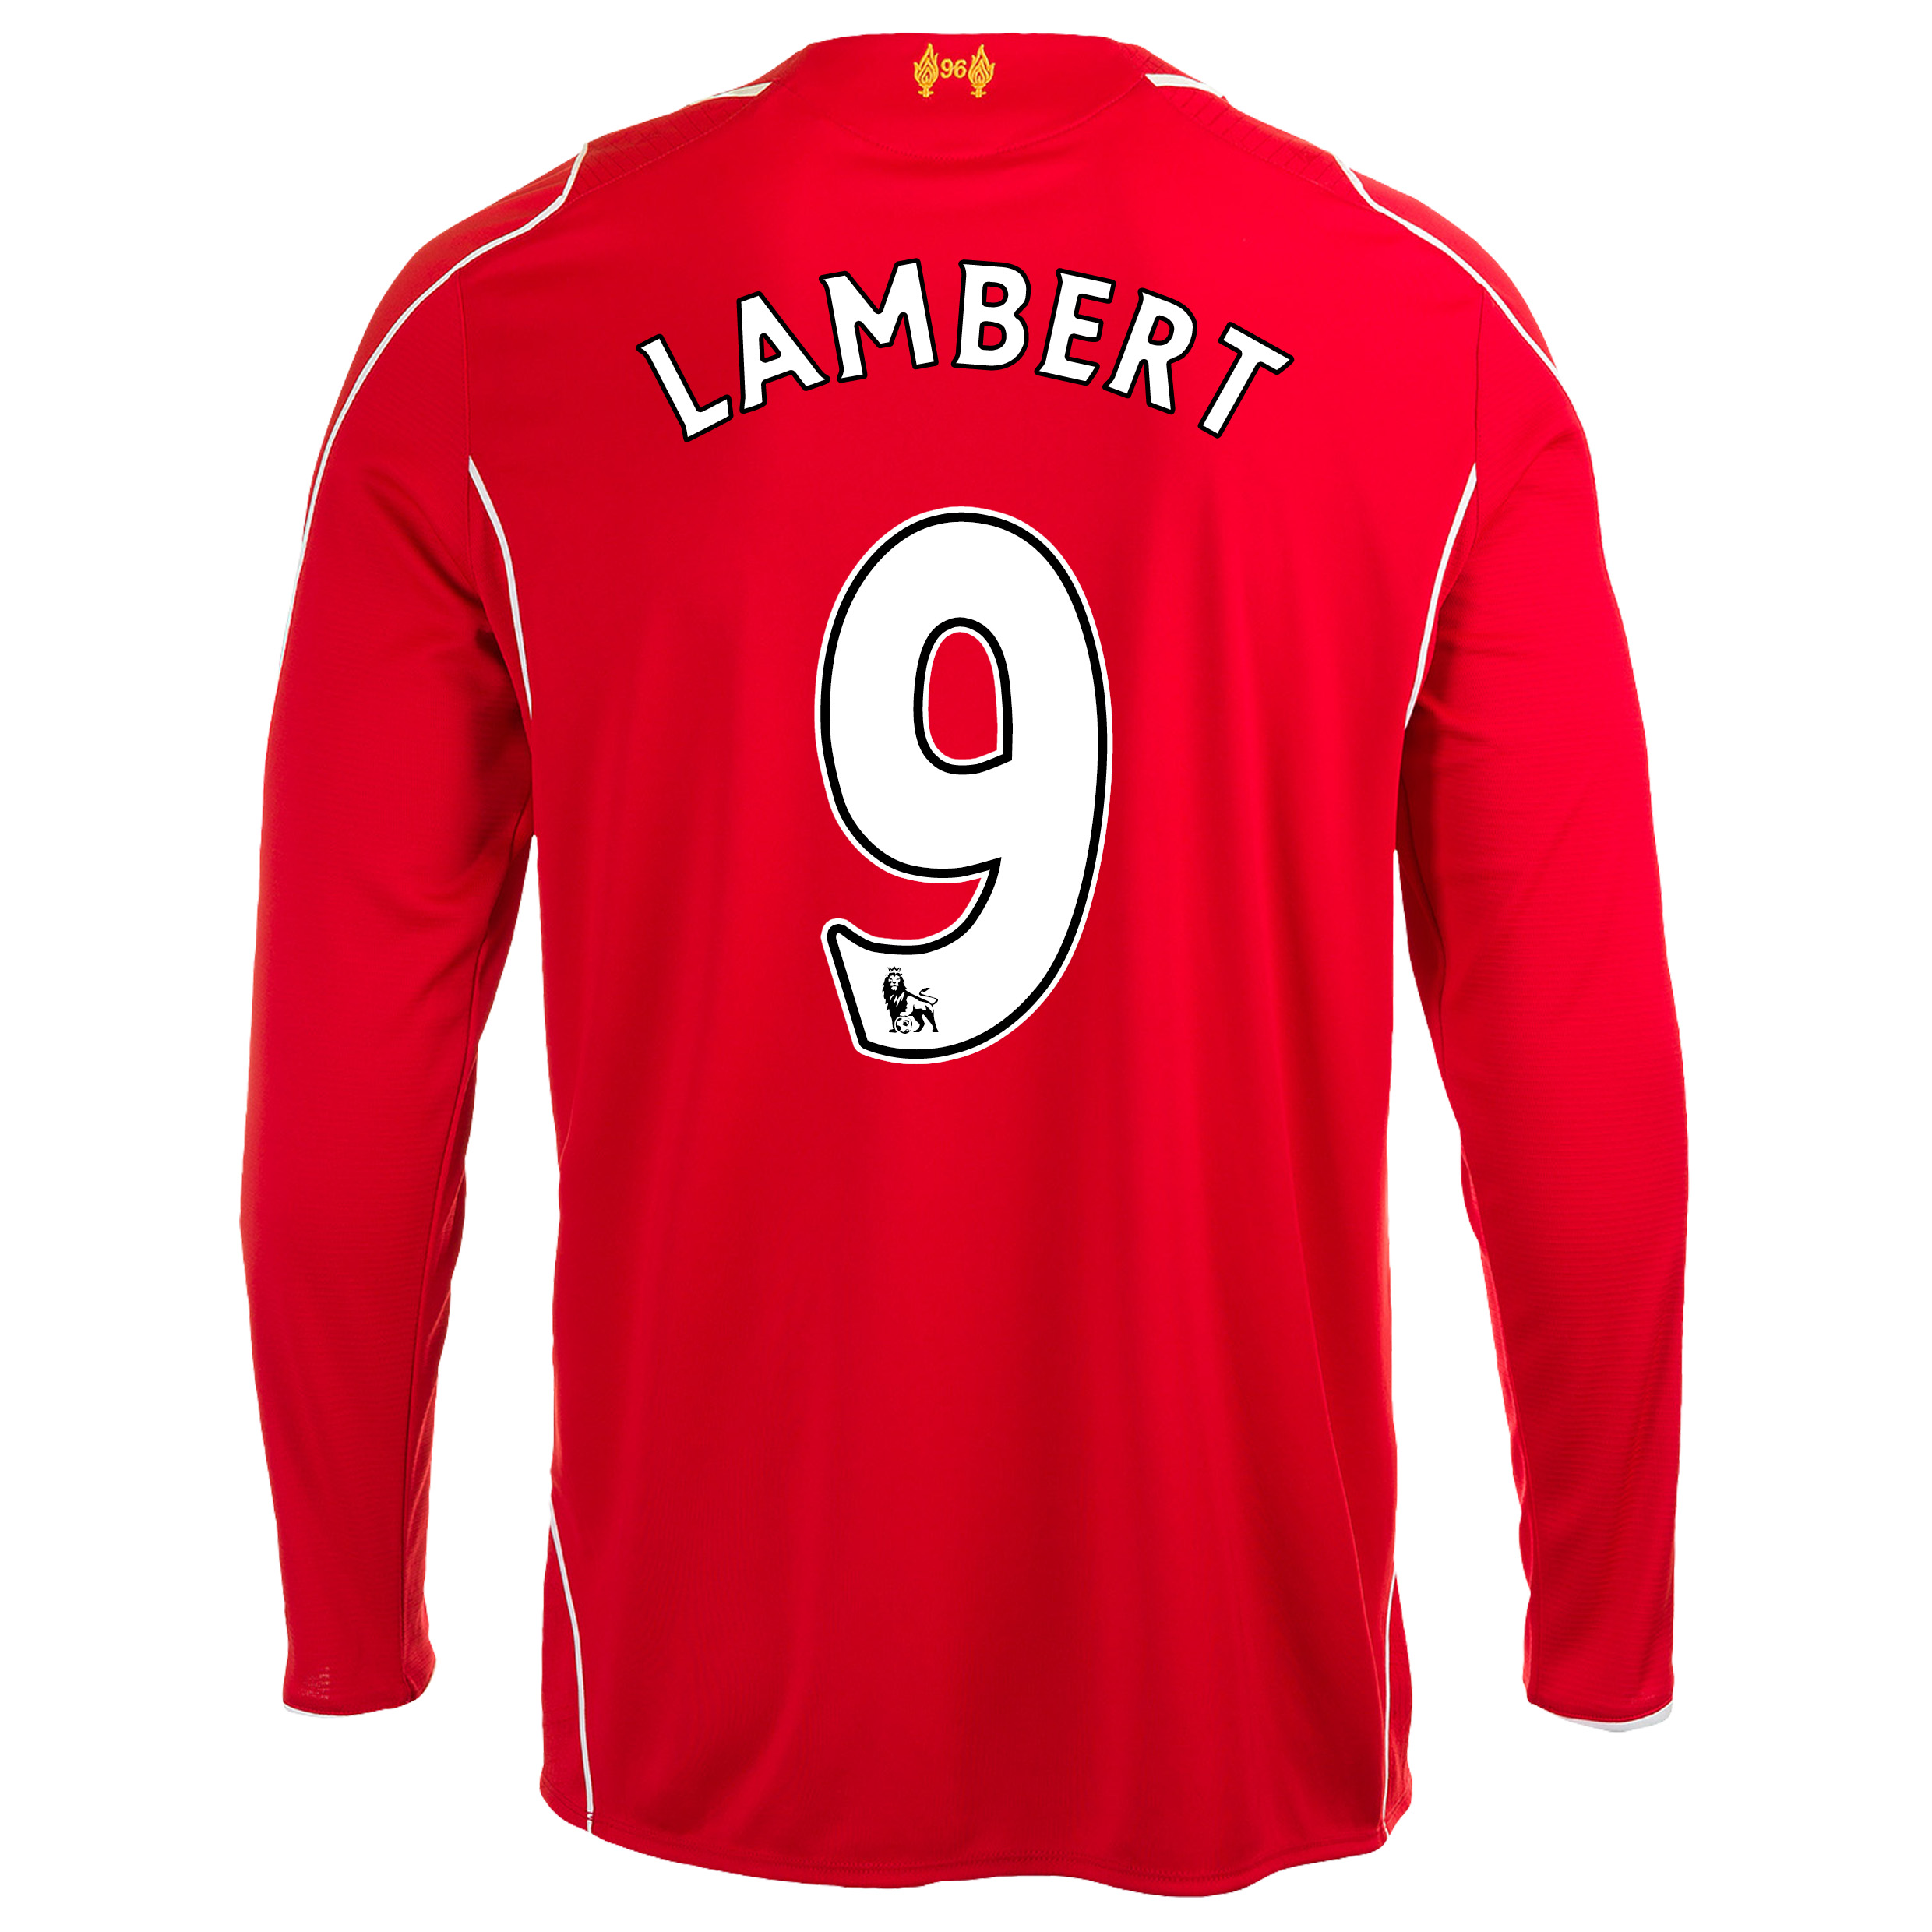 Liverpool Home Shirt 2014/15 Long Sleeve with Lambert 9 printing